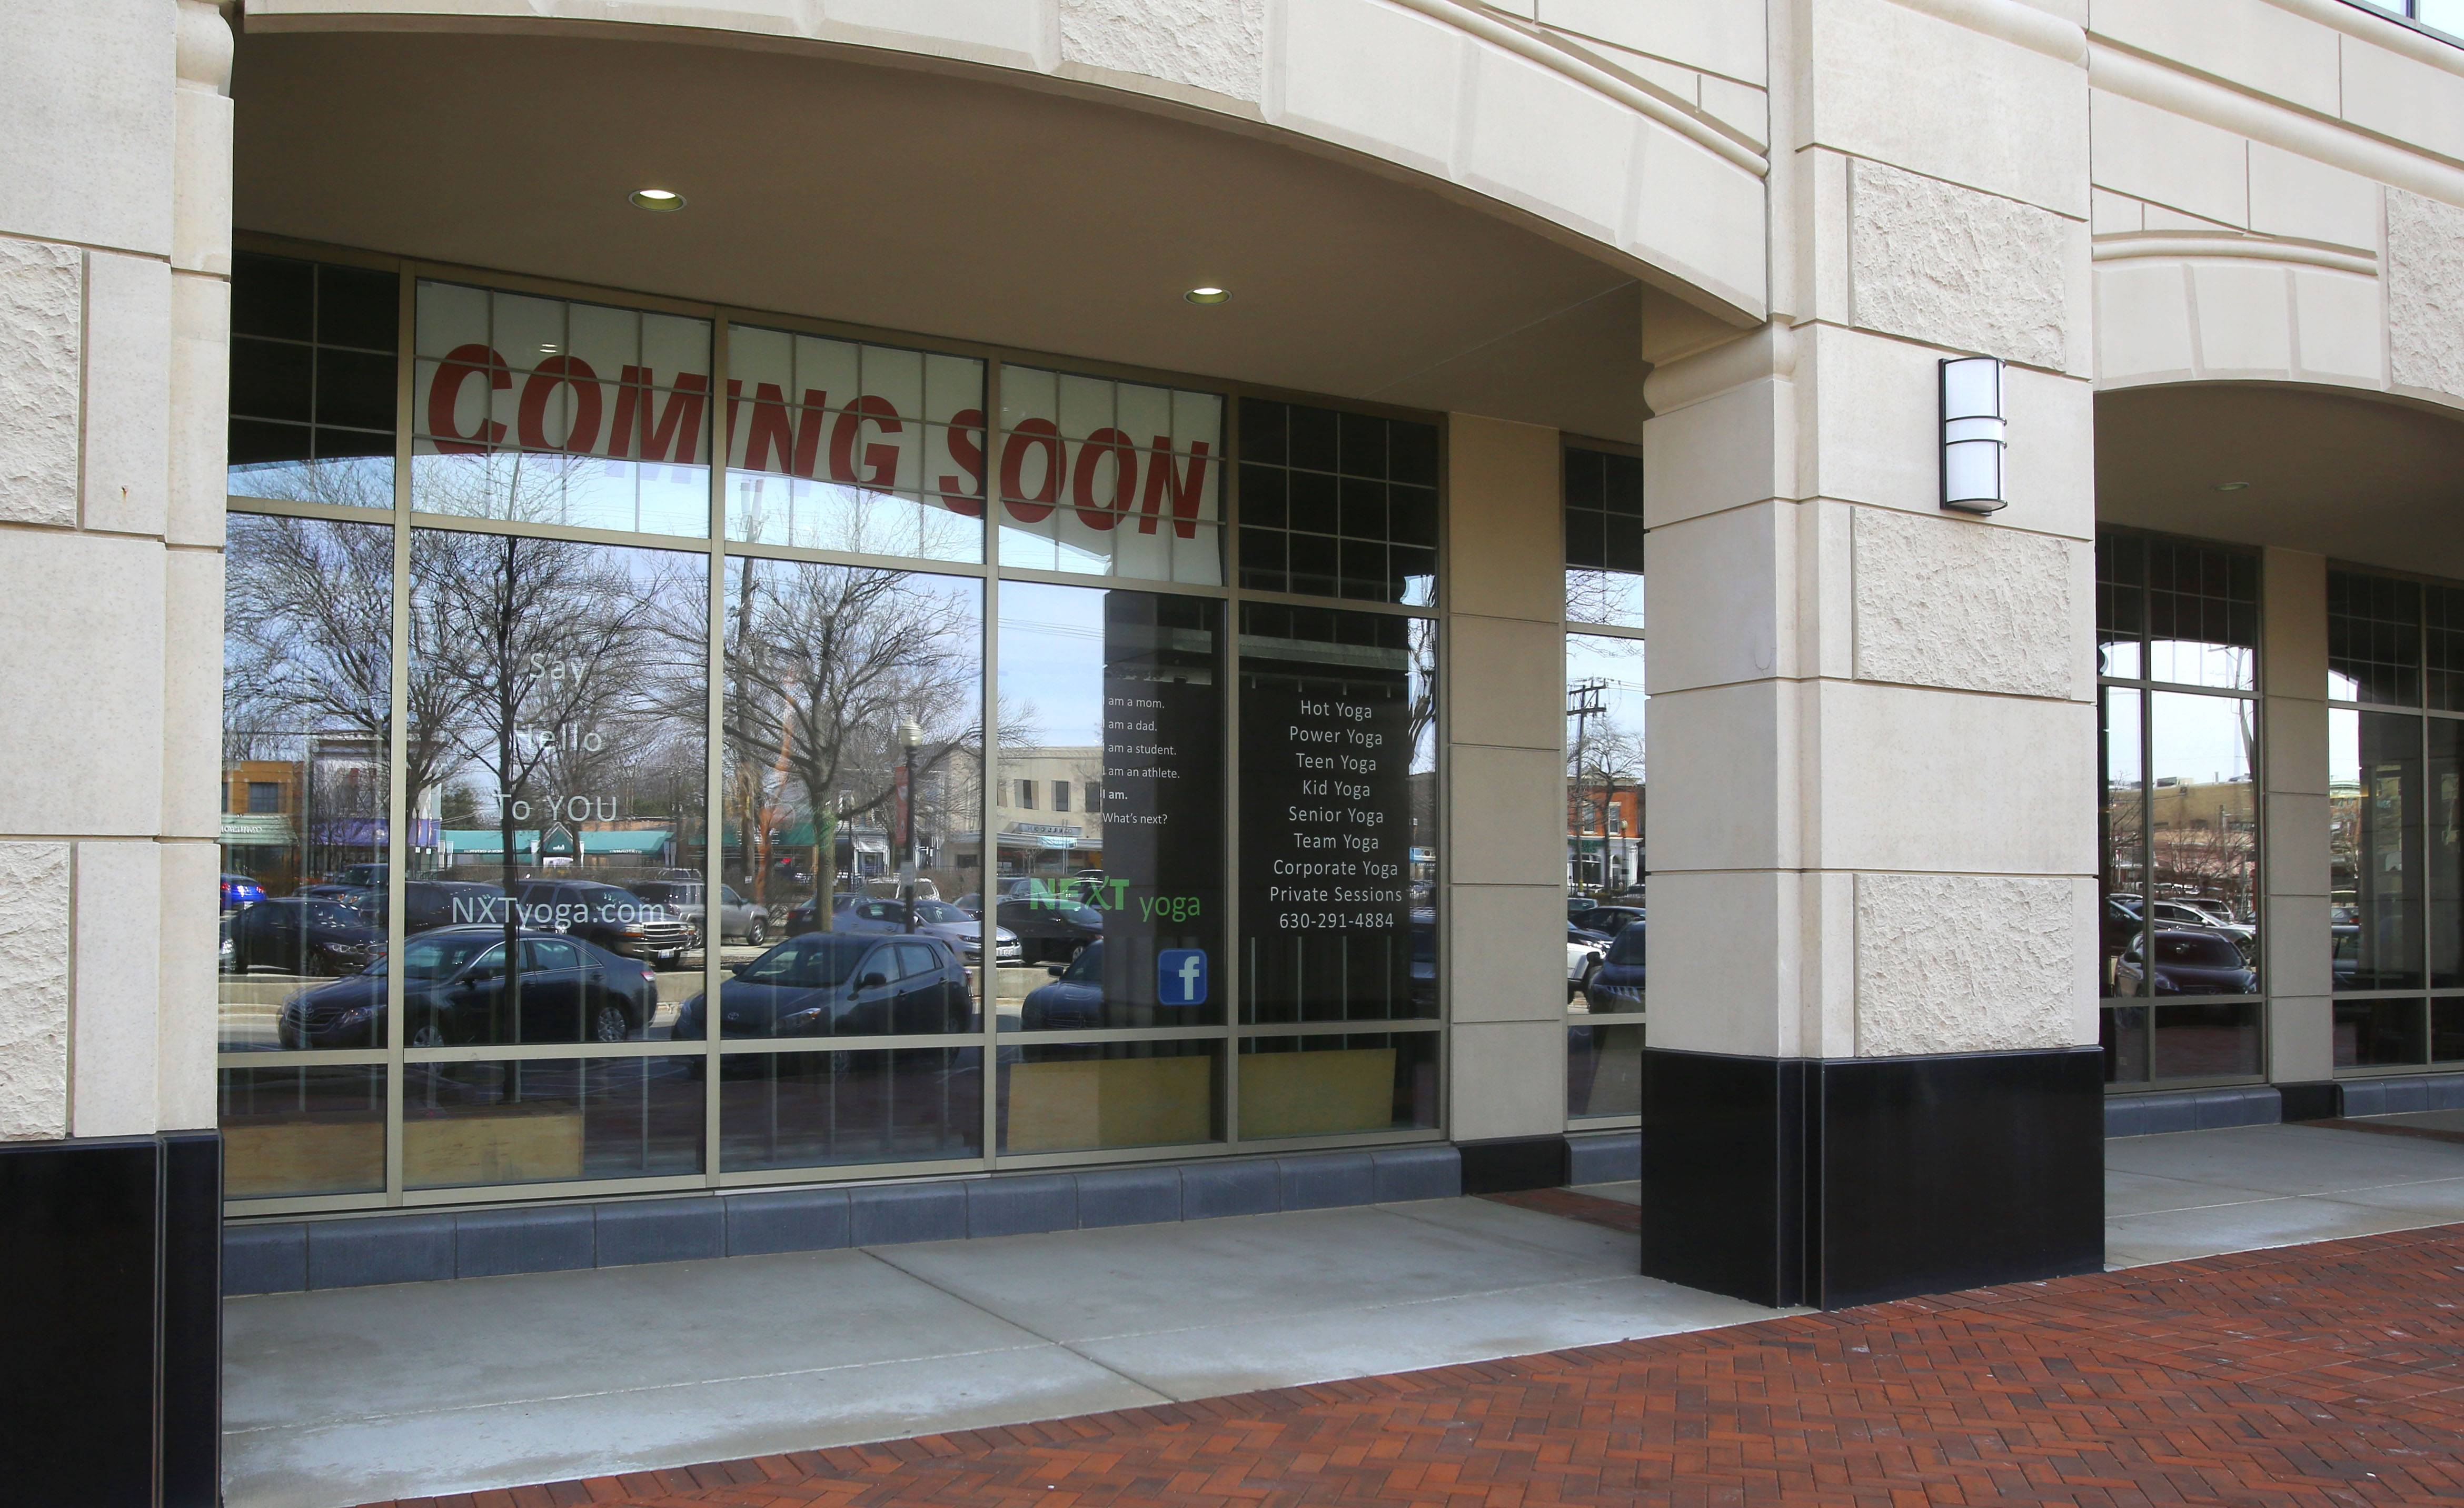 A new yoga studio and pizza place are expected to open soon at 120 E. Liberty St. in downtown Wheaton.